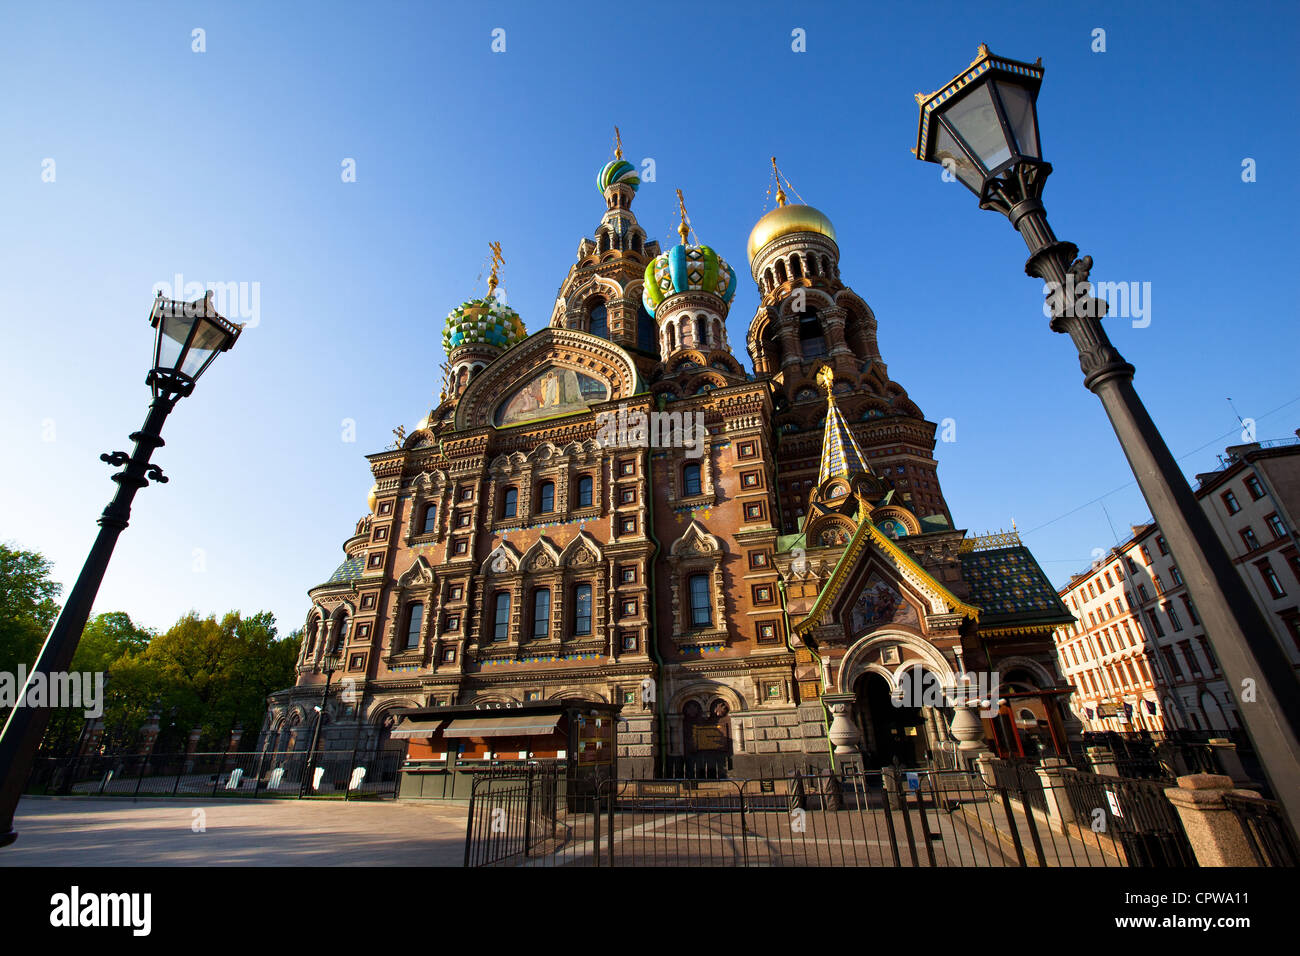 St.Petersburg, Spas-na-krovi cathedral, Russia. - Stock Image